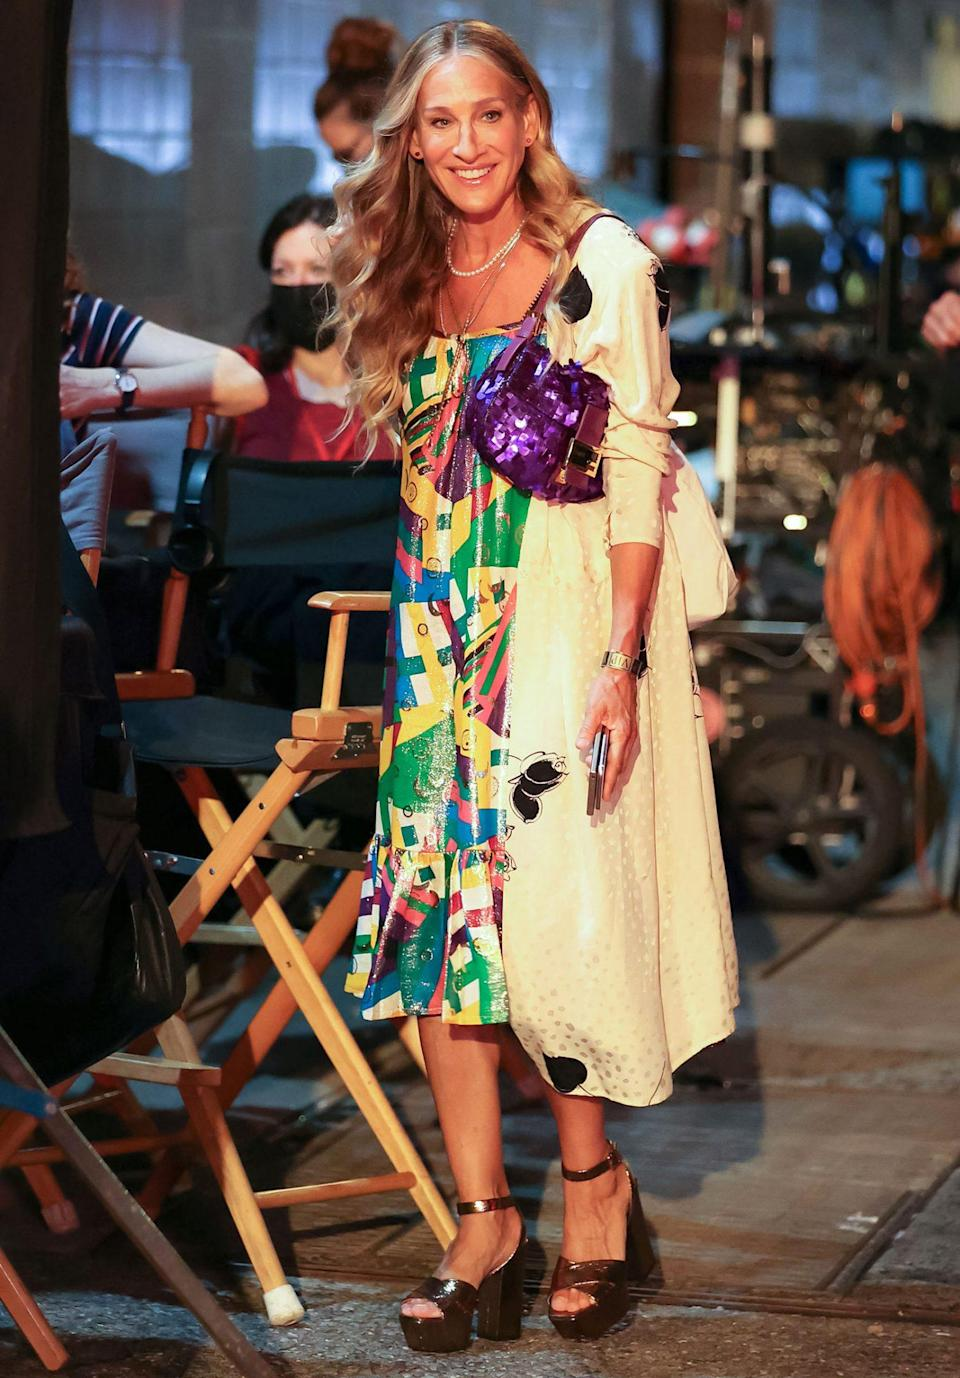 <p>Sarah Jessica Parker gets into character on the set of her <em>Sex and the City </em>revival <em>And Just Like That...</em> in New York City.</p>